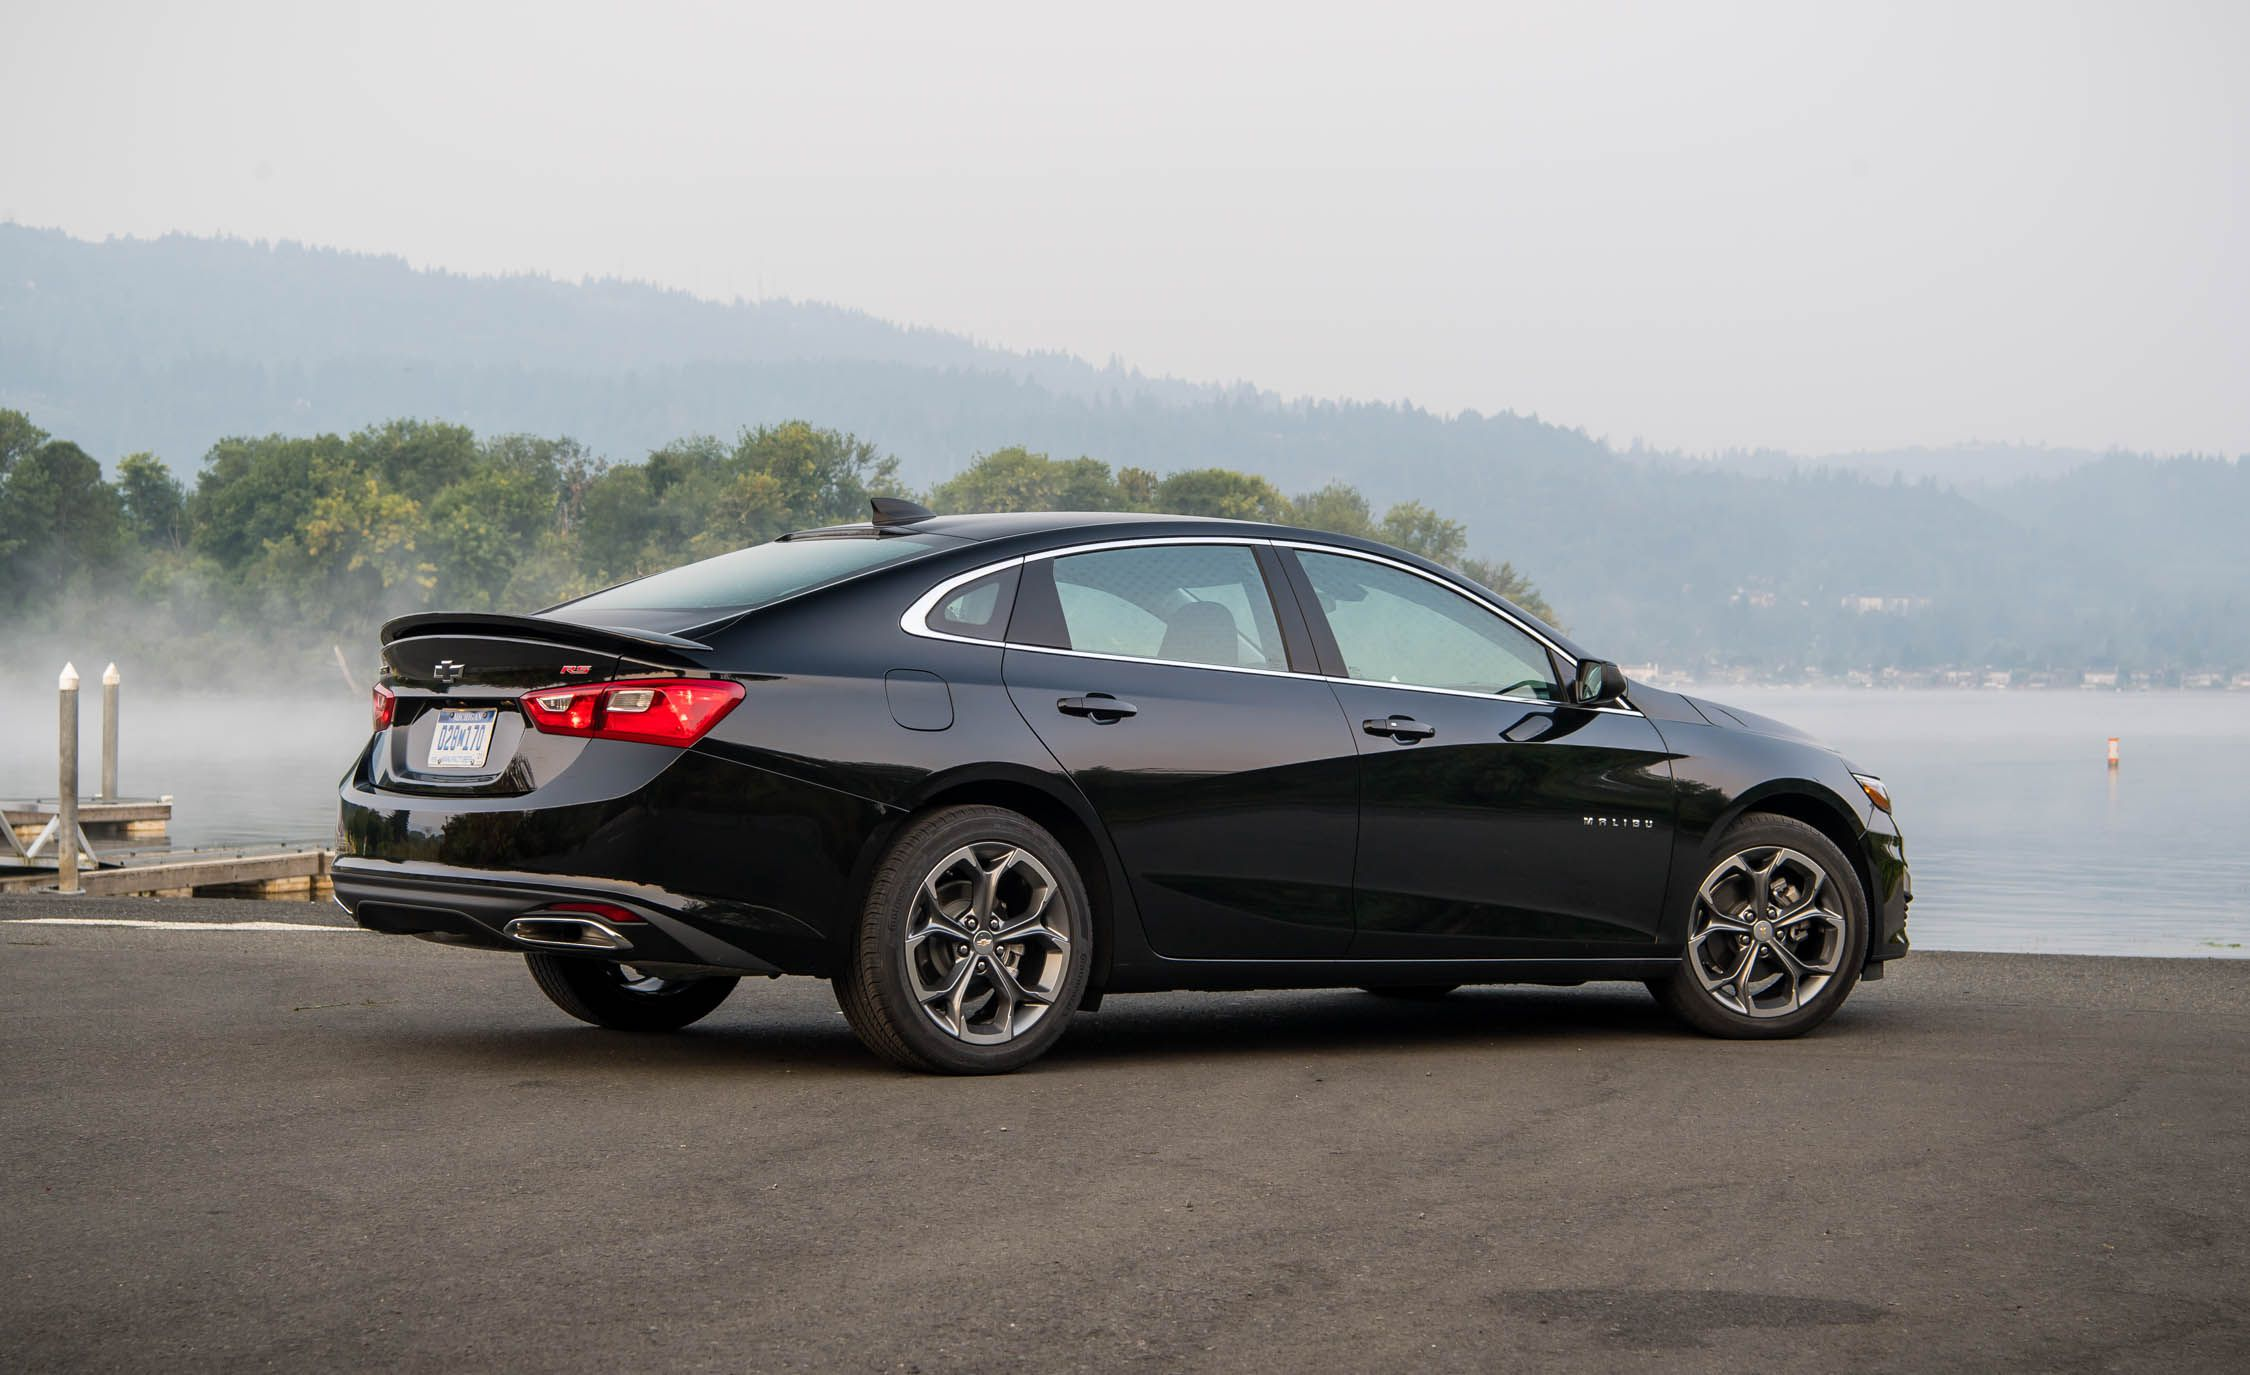 2019 Chevrolet Malibu RS Rear Three-Quarter Wallpapers (8)